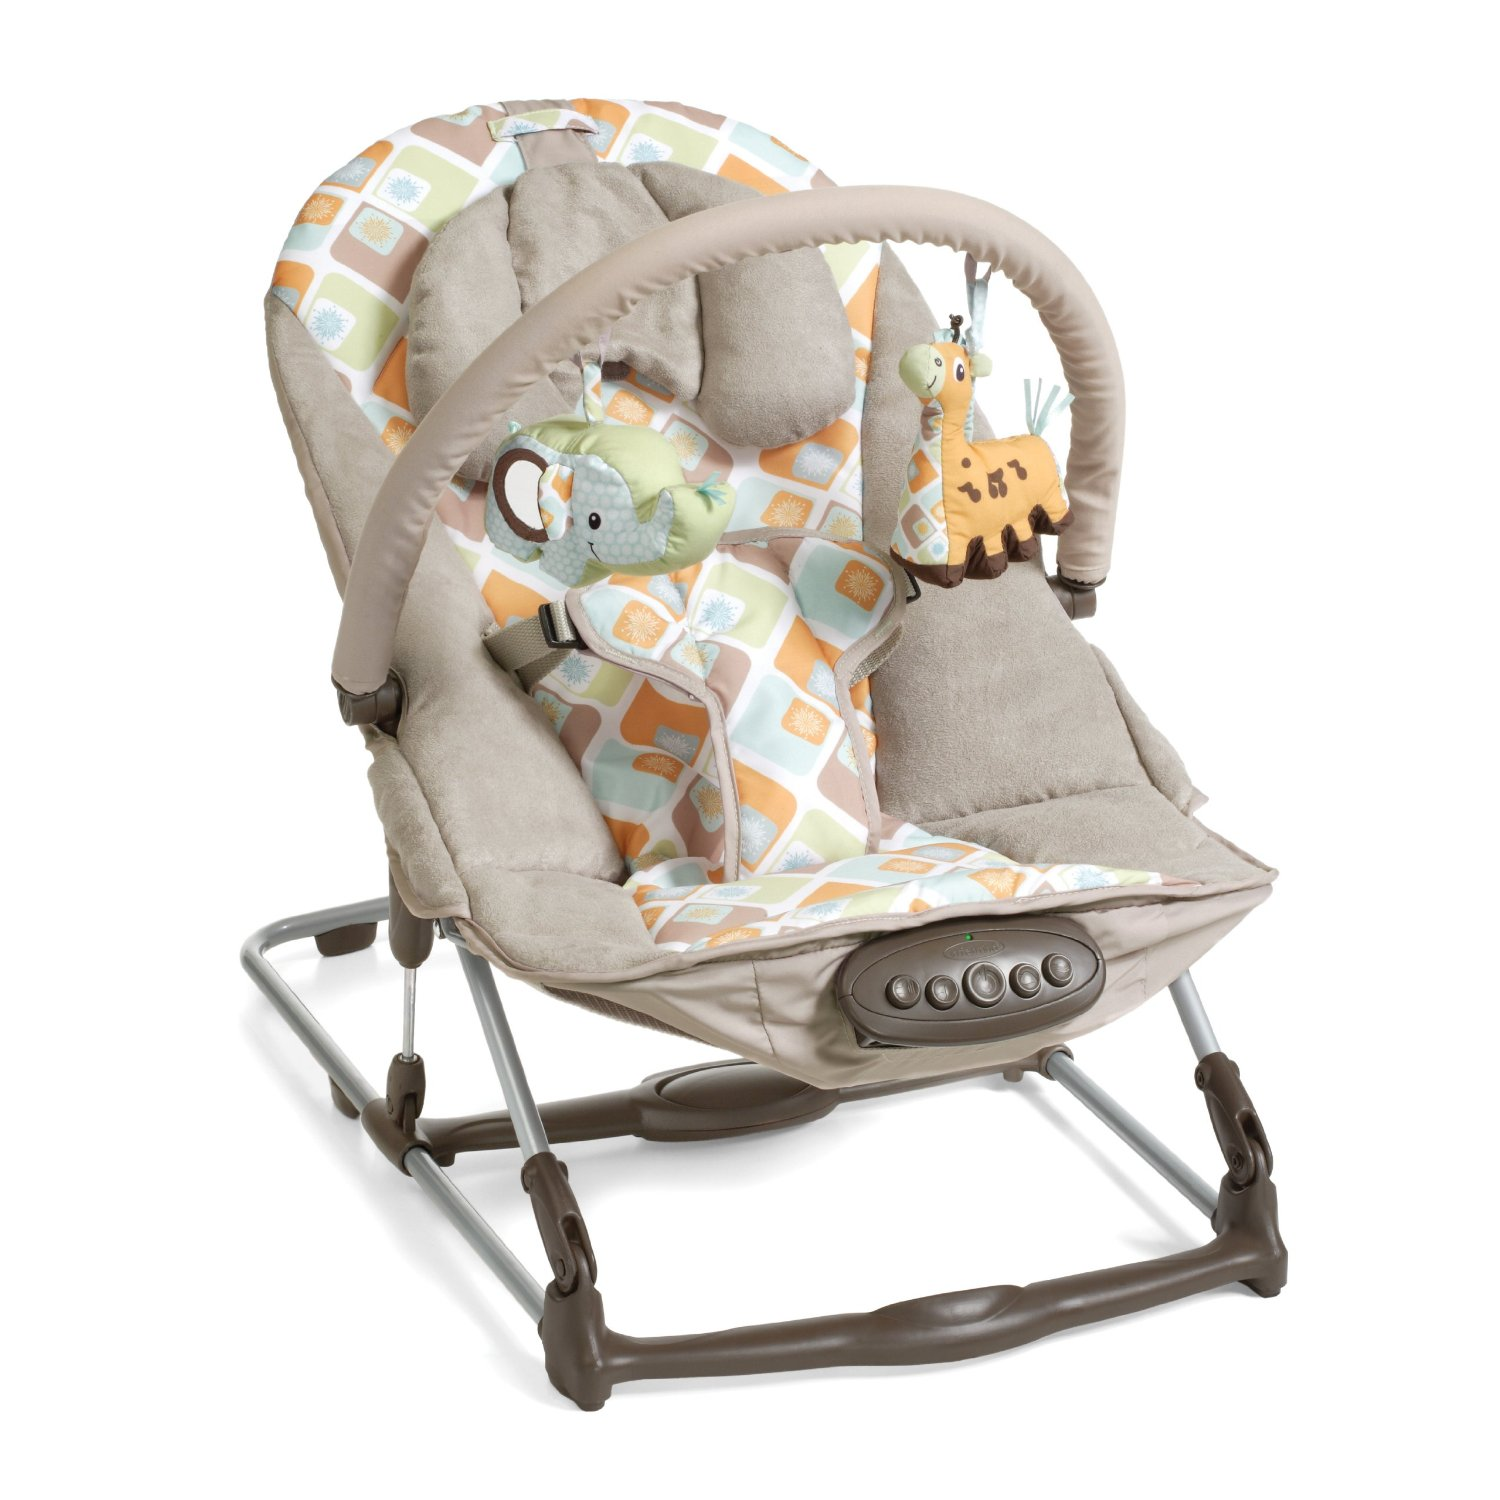 Chairs For Babies Next Stop Another Baby Top 10 List Baby Chair Swing